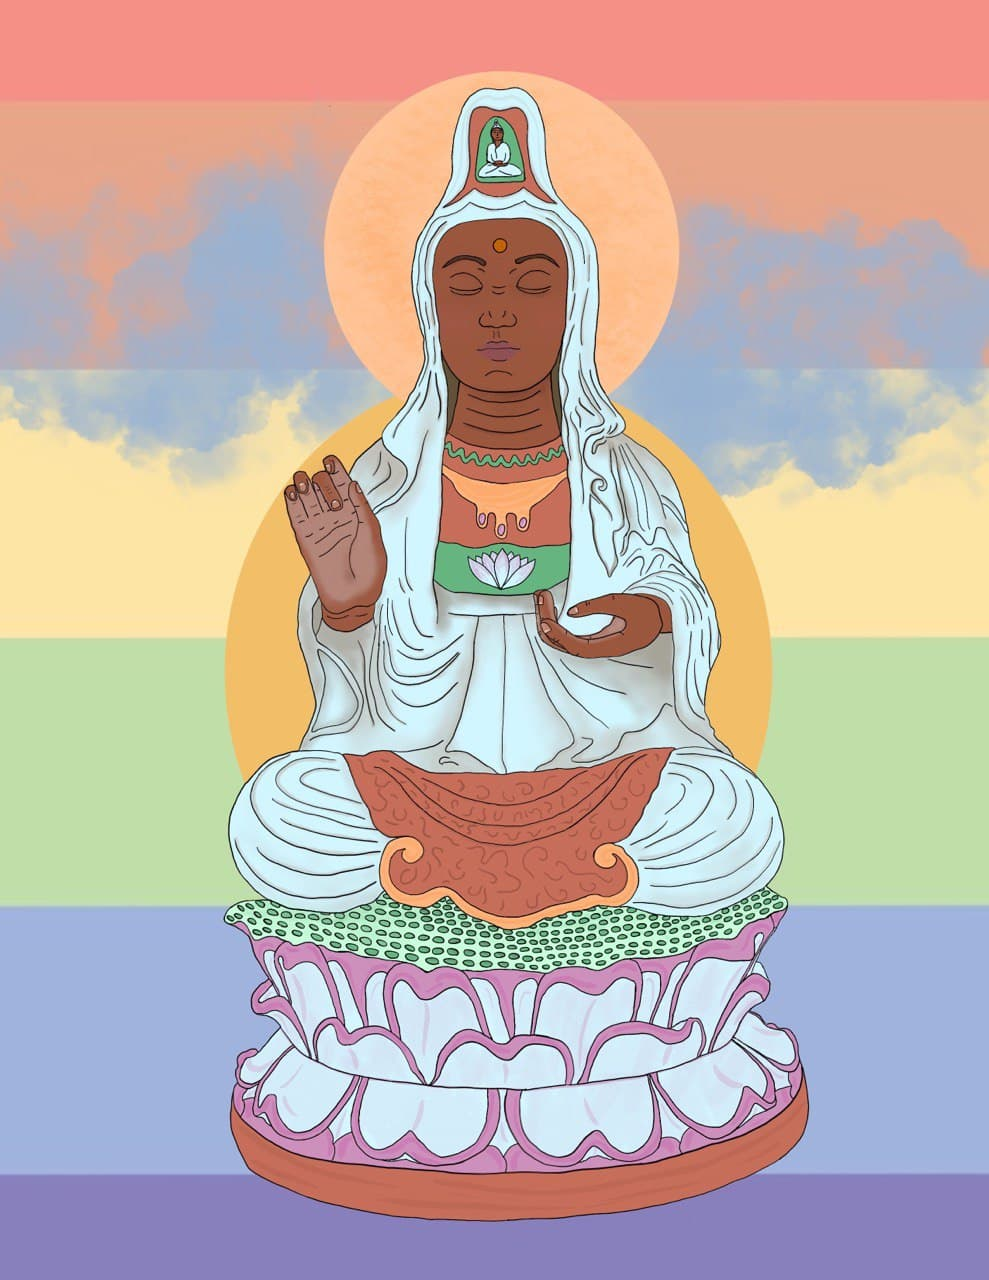 An image of a dark skinned Guan-Yin the Bodhisattva of compassion against a pastel LGBTQIA* flag background